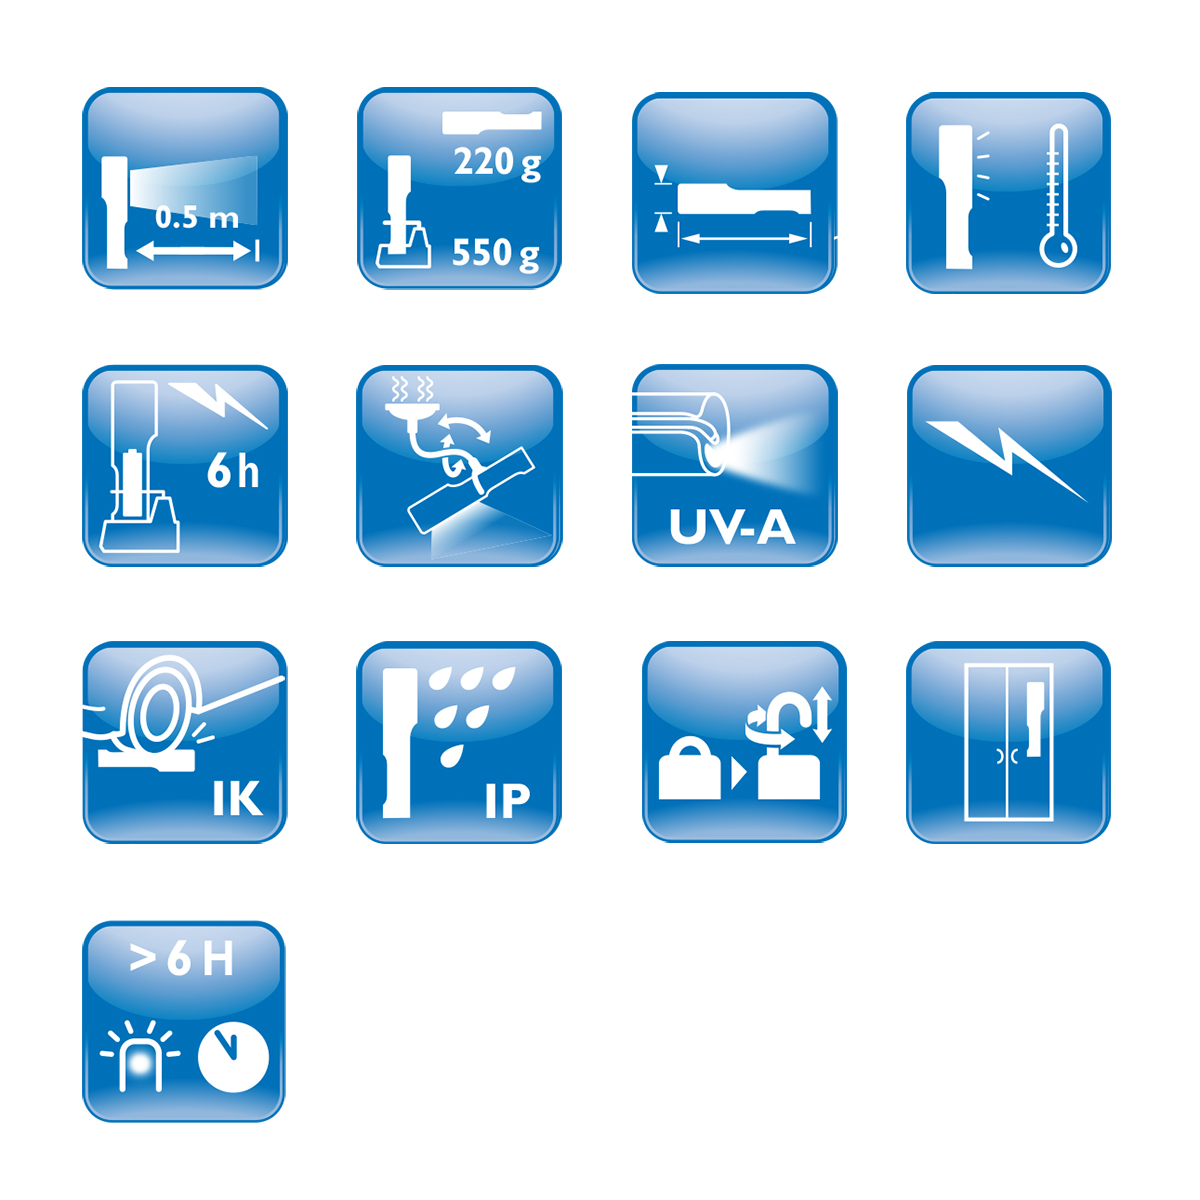 Philips LED workshop lamp icons and symbols